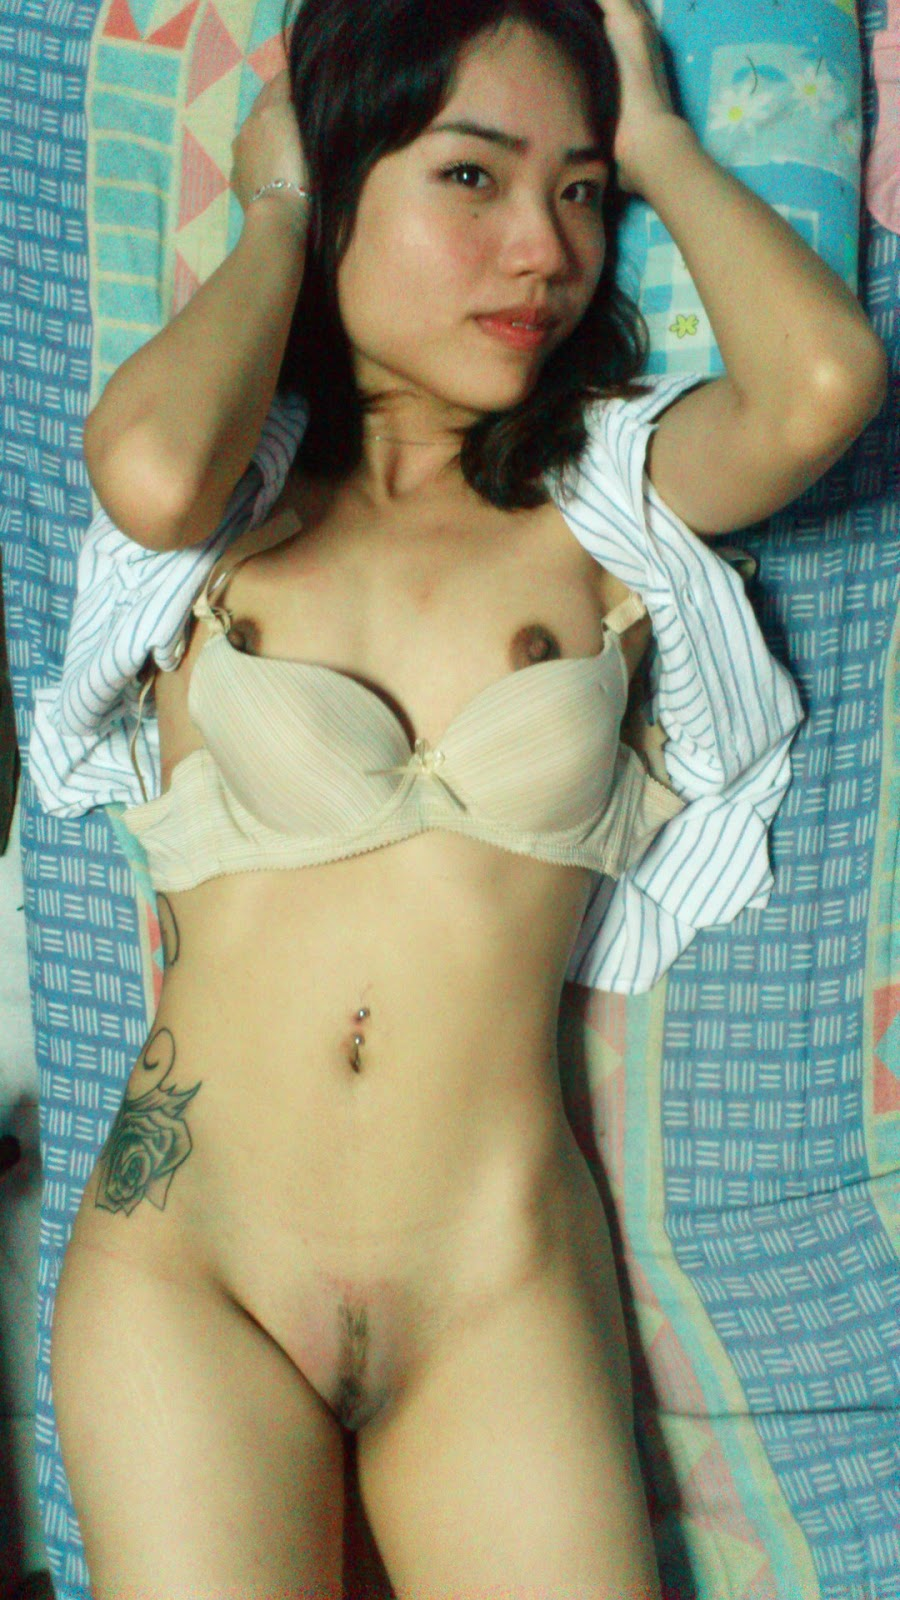 Erotica Malaysian Se Blog Eposed With Nude S And Videos